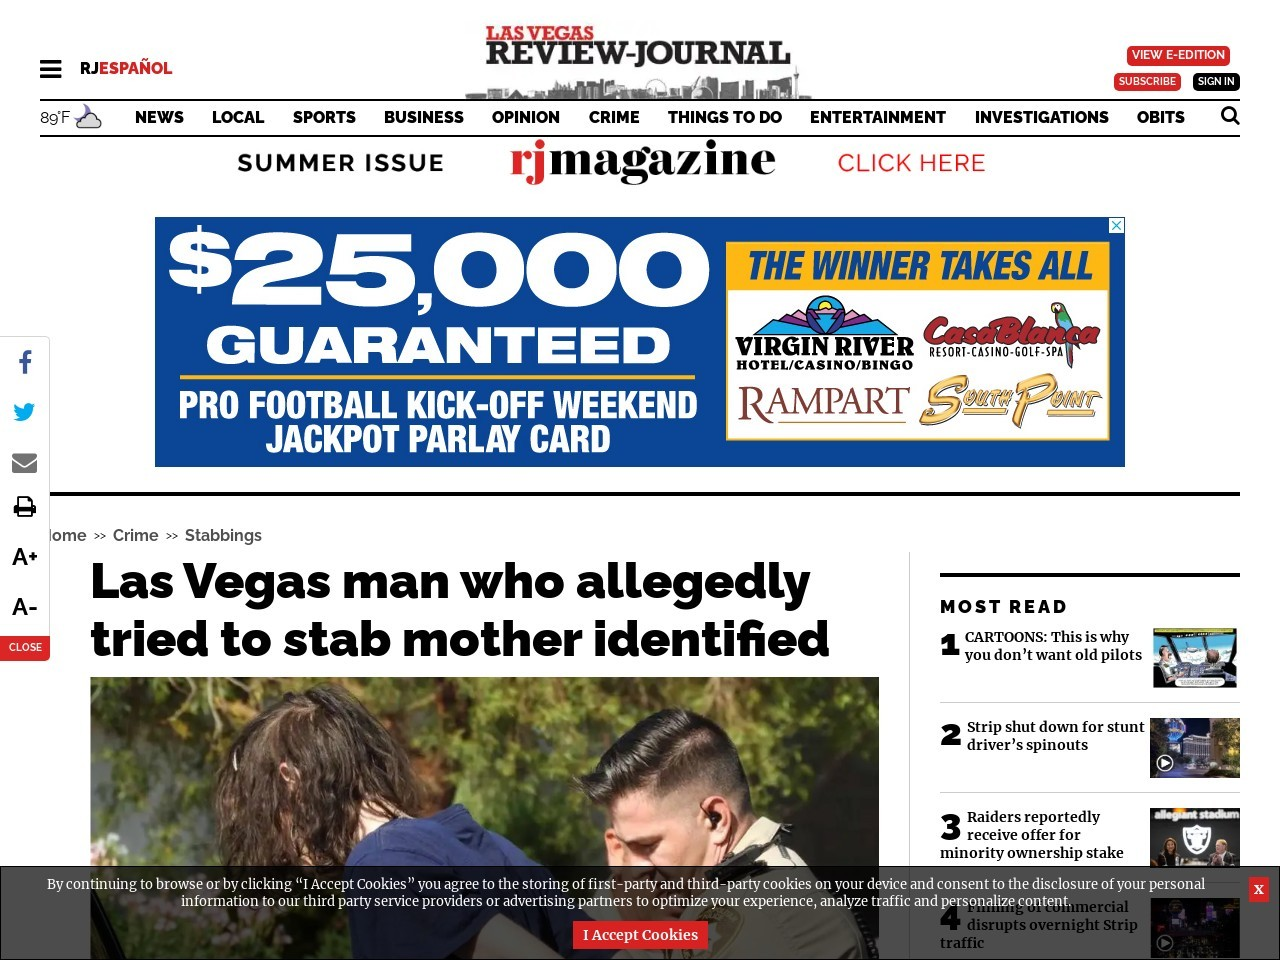 Las Vegas man who allegedly tried to stab mother identified